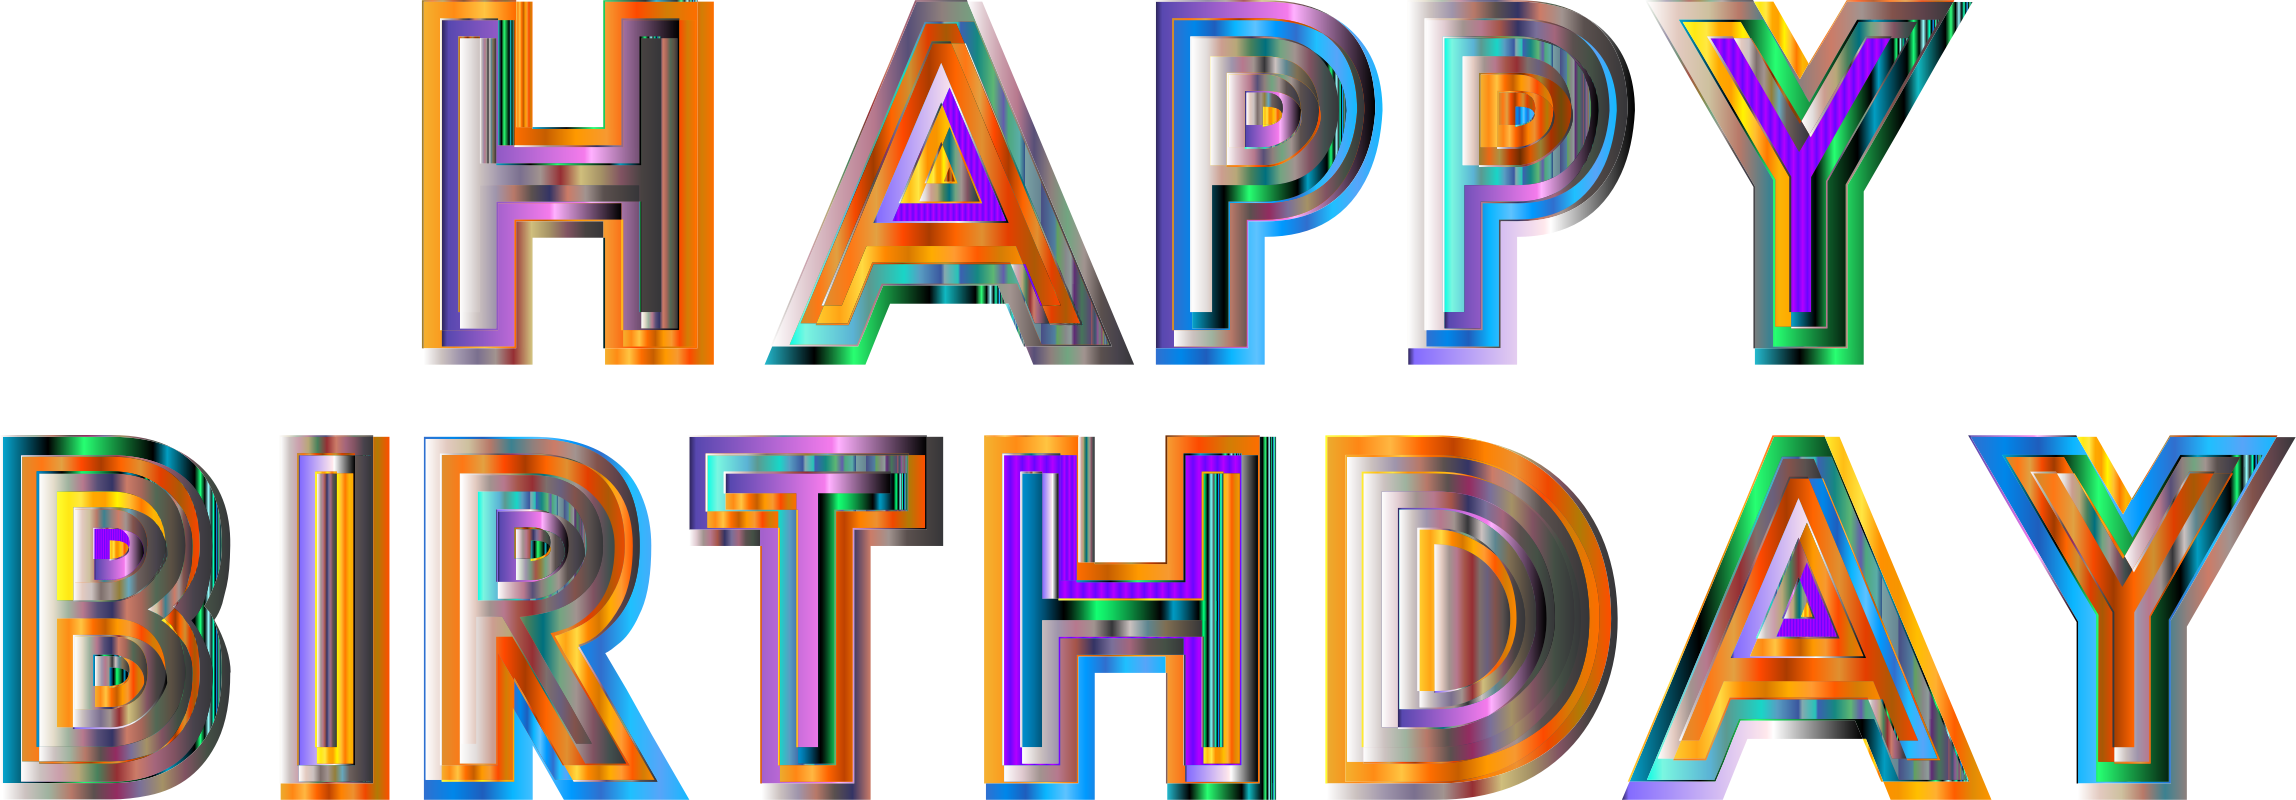 Happy Birthday Typography 4 by GDJ